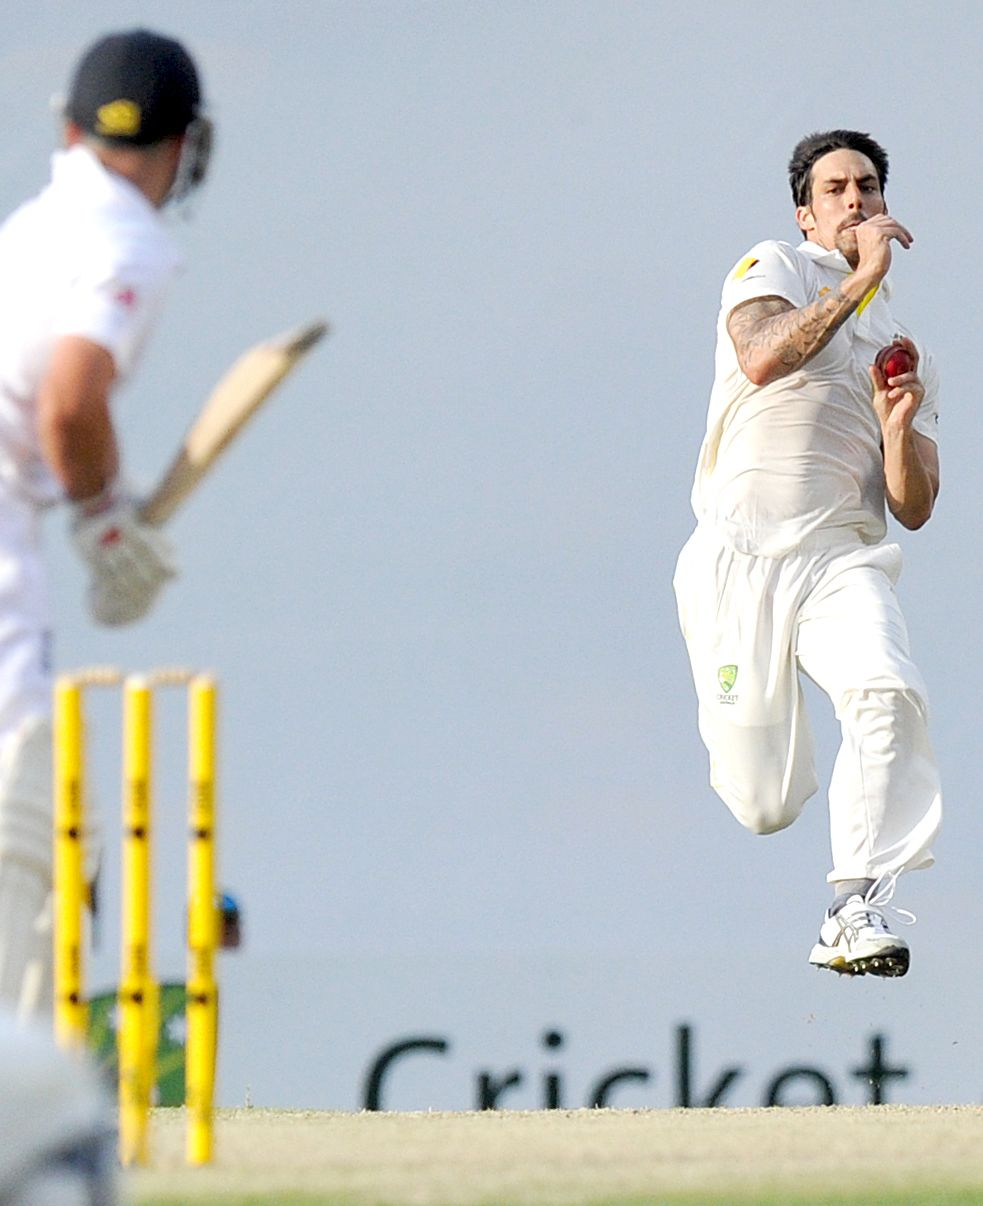 Cricket bowler running in to bowl the ball